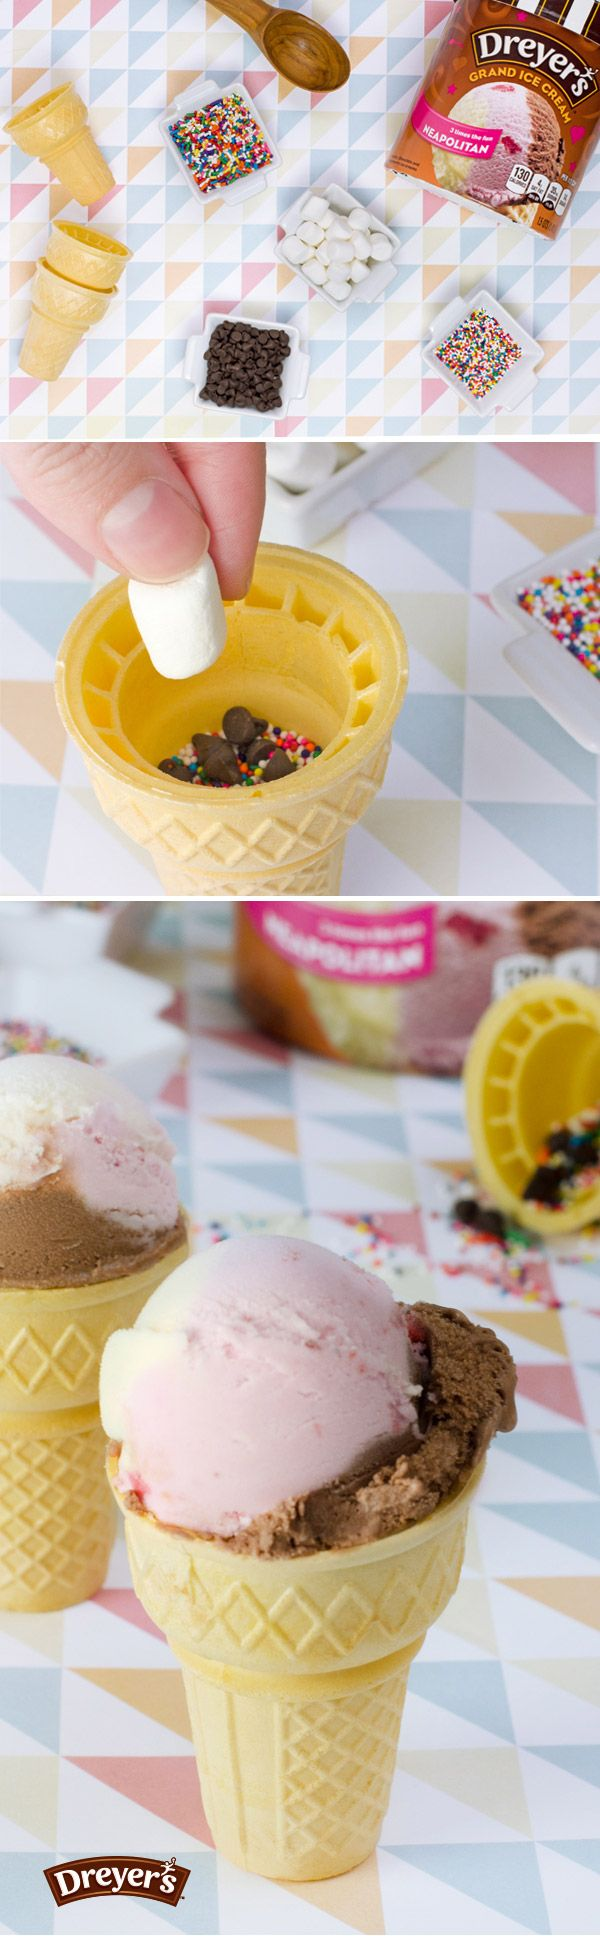 These simple treats are perfect for a party! Just fill the bottom of a cone with your favorite treats – candy, marshmallows, sprinkles, or any other fun goodies you have on hand and top with a scoop of Dreyer's ice cream. Finish your ice cream to find your sweet surprise!